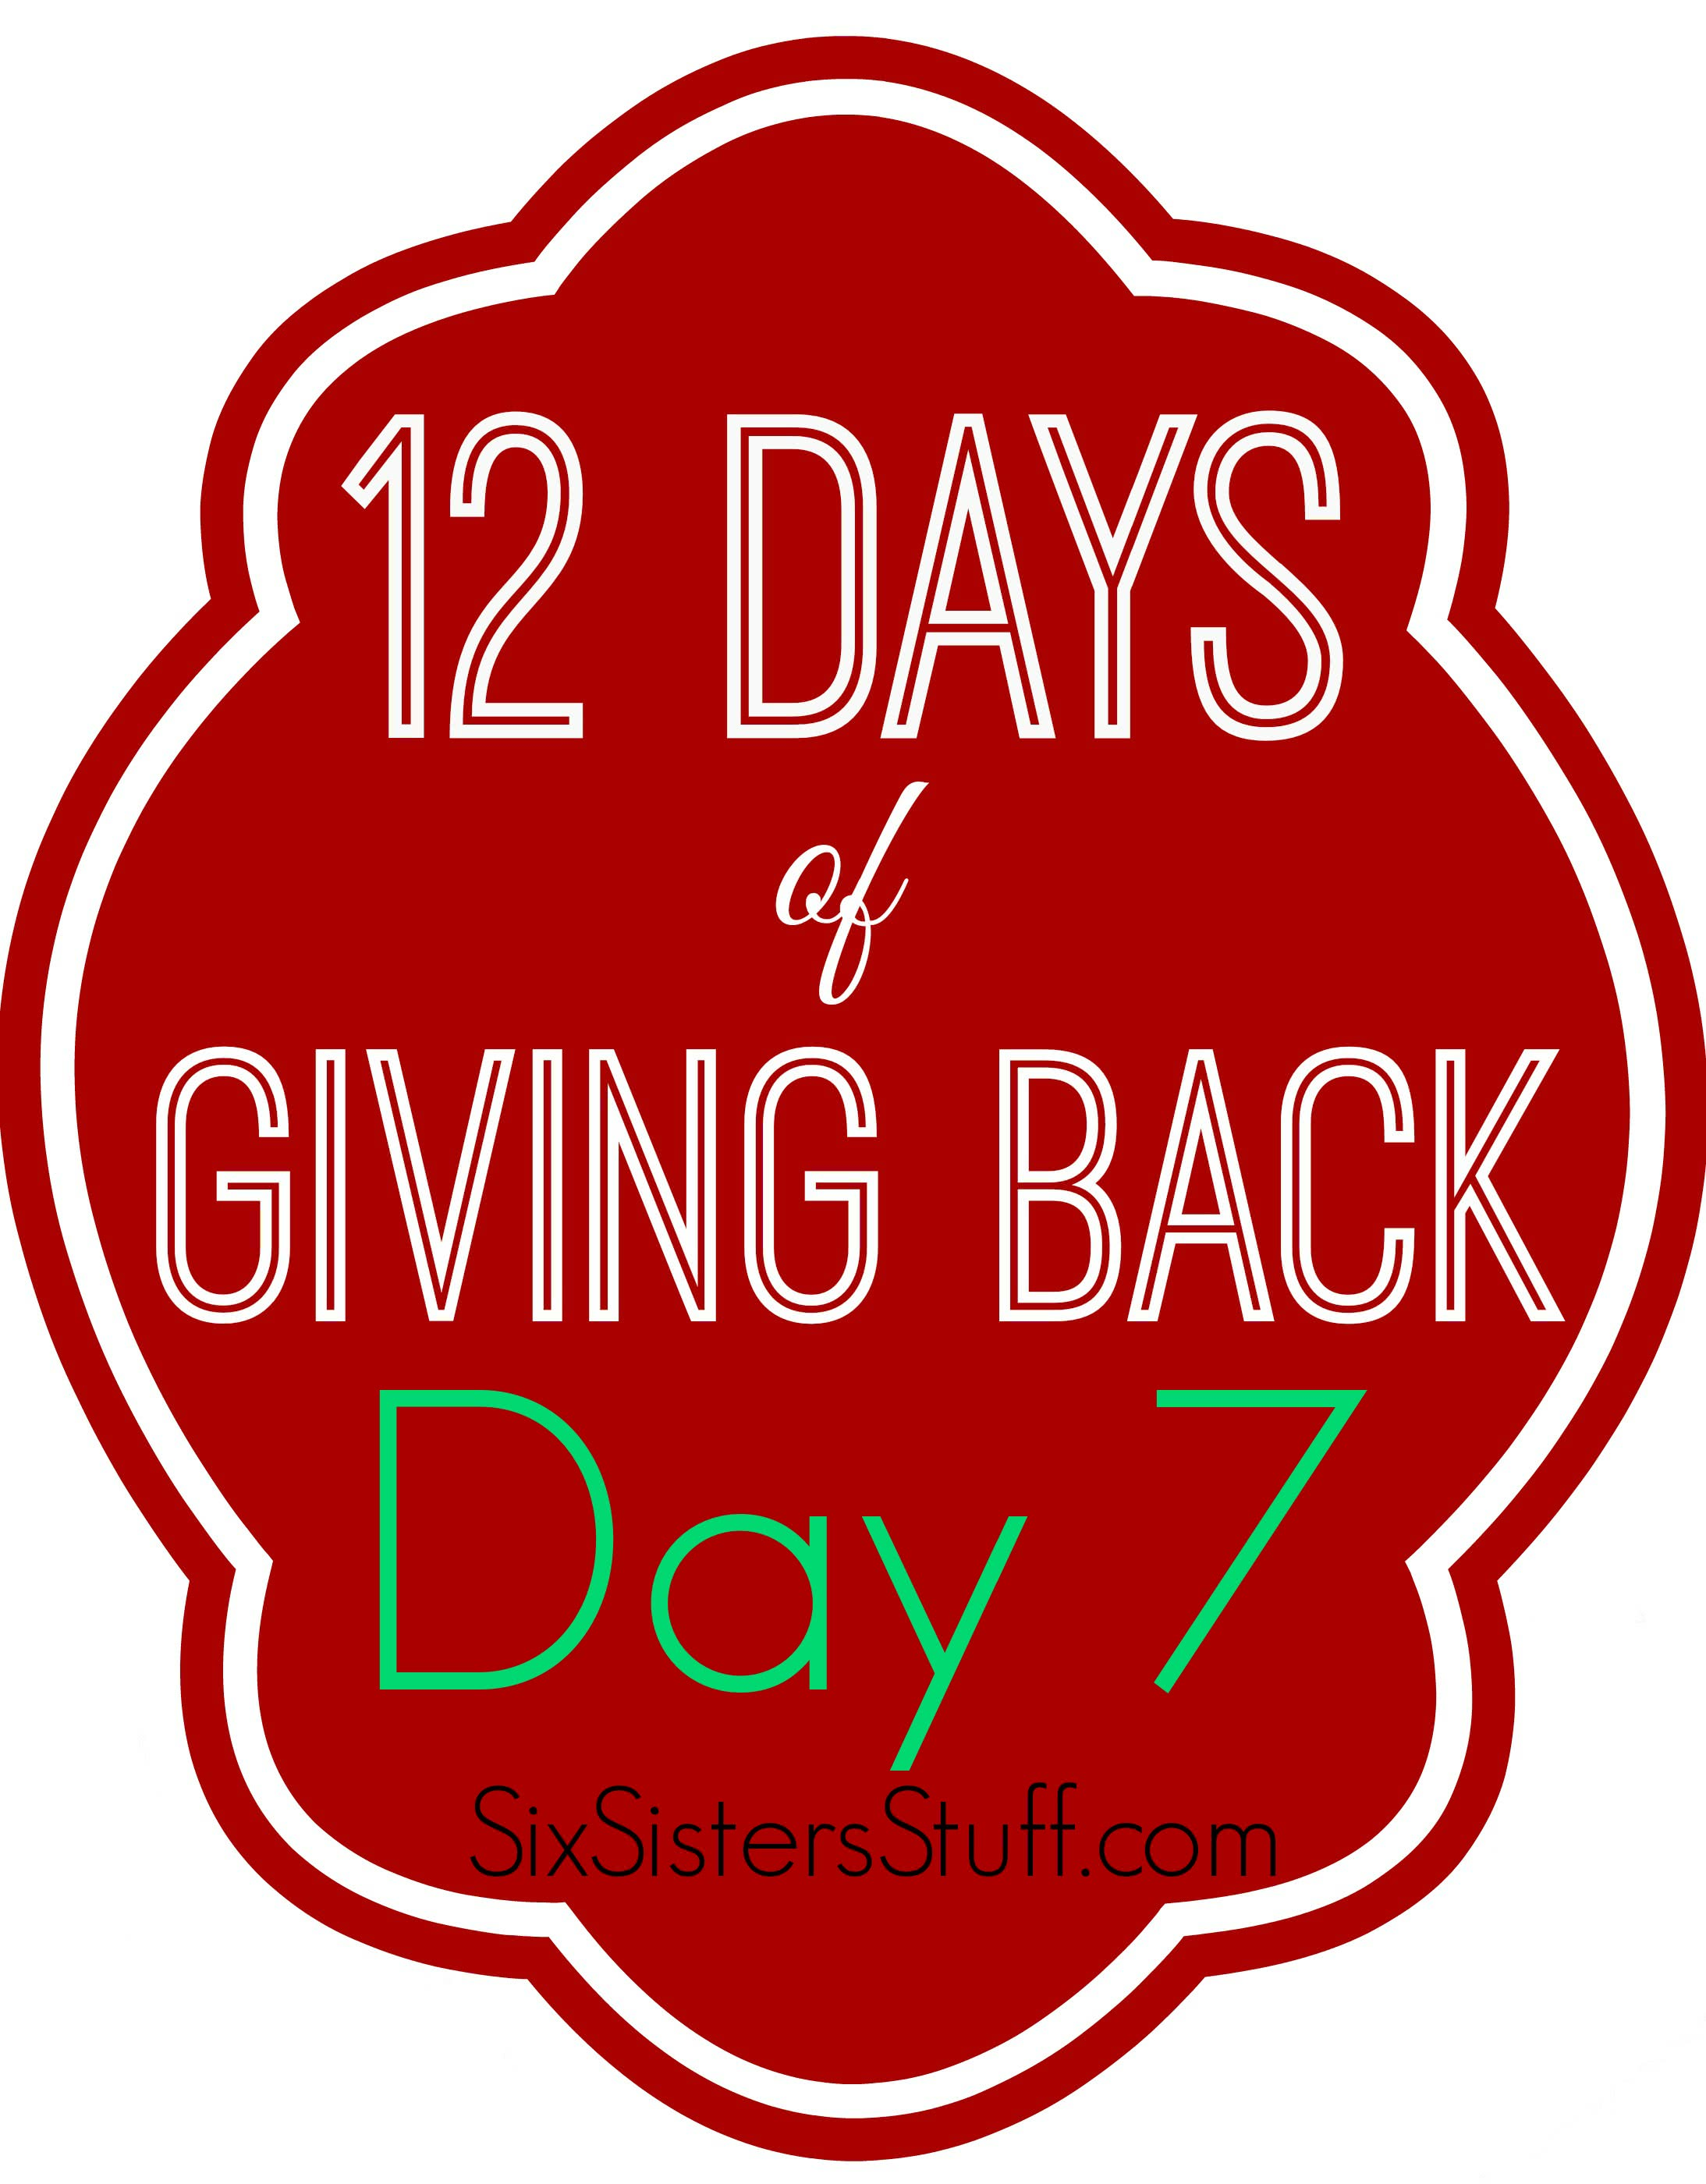 12 Days of Giving Back - day 7